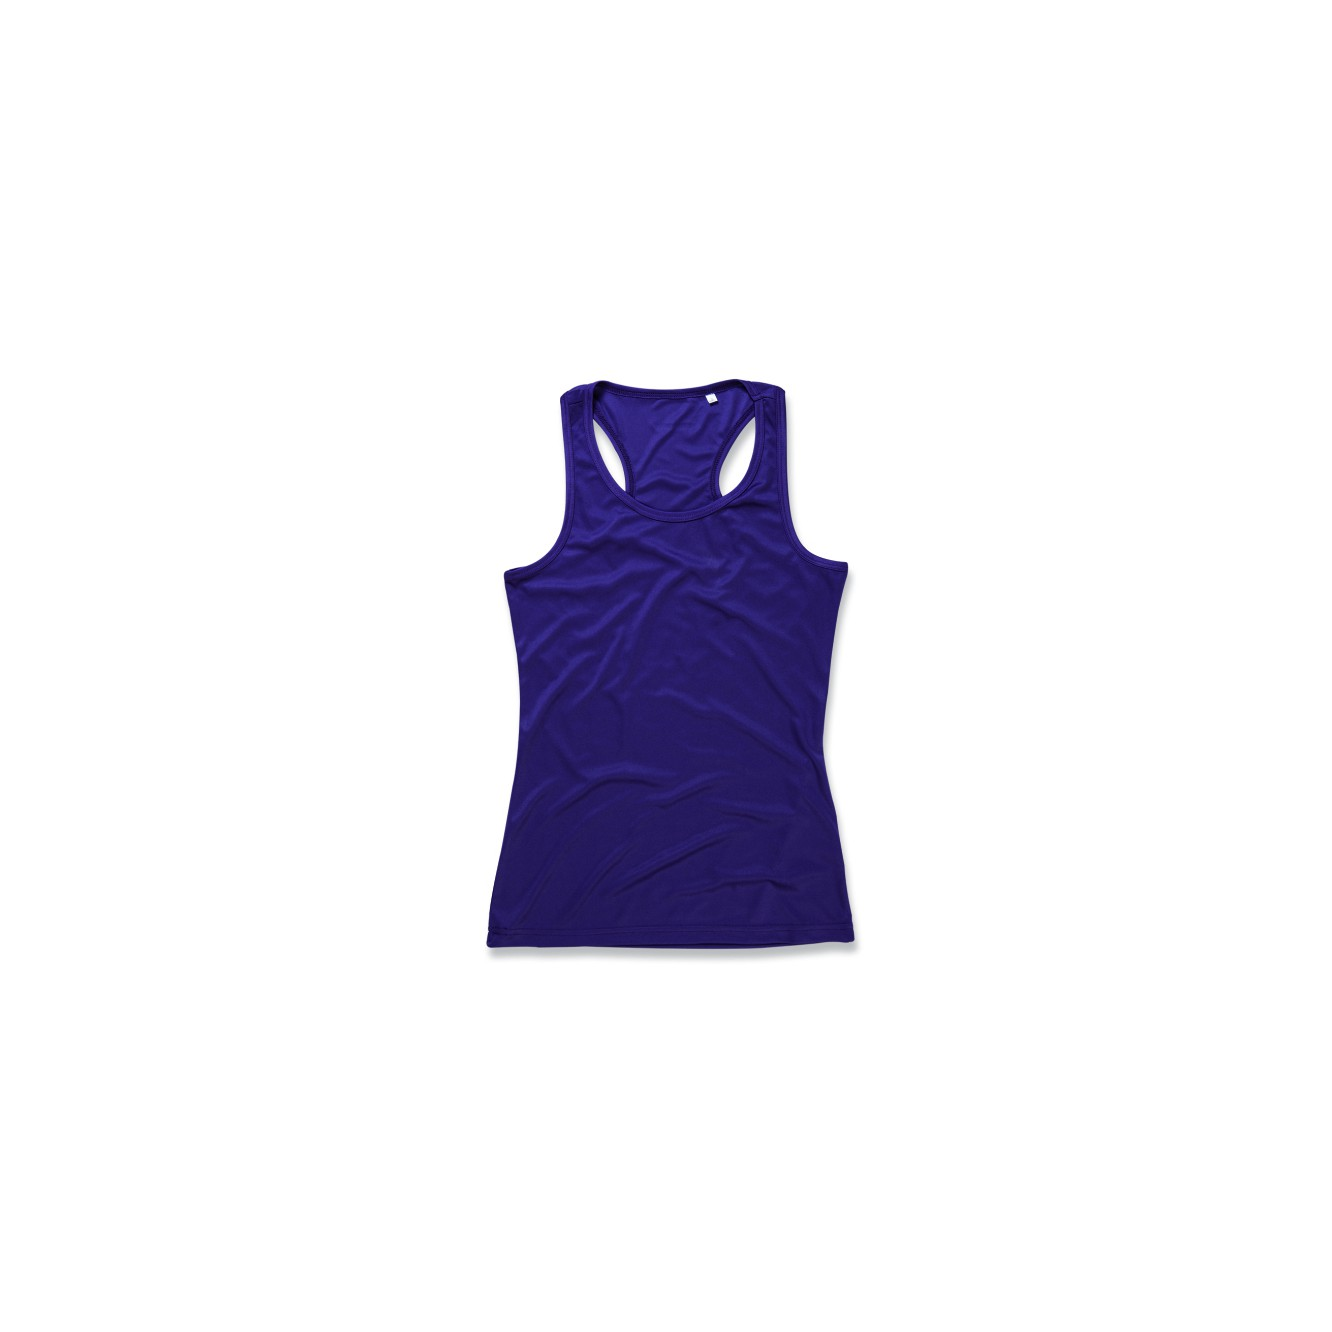 Tanktop interlock active-dry ss for her